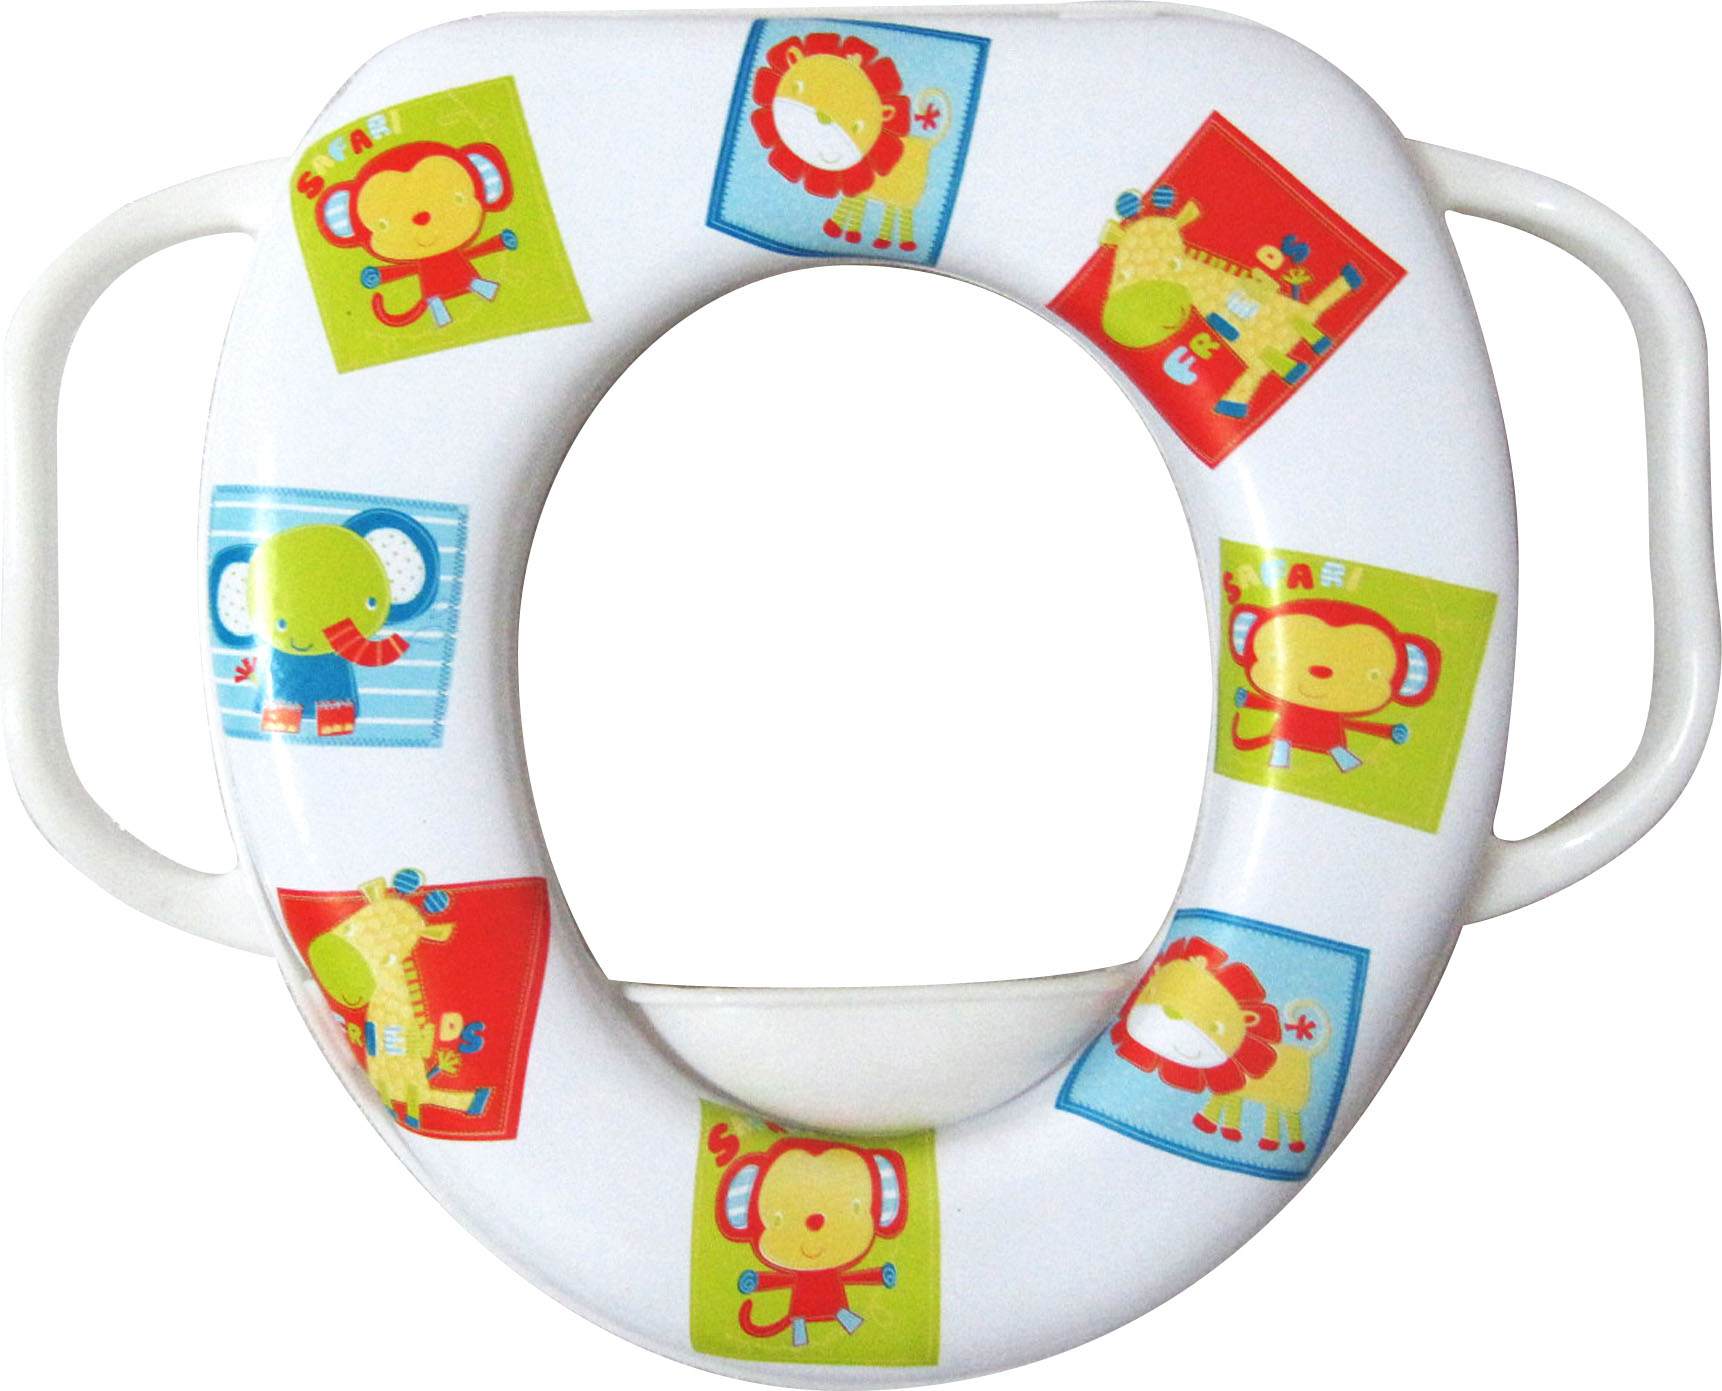 Easy Grip Handles Baby Soft Toilet Toilet Trainer Seat Jungle Animals by Evideco